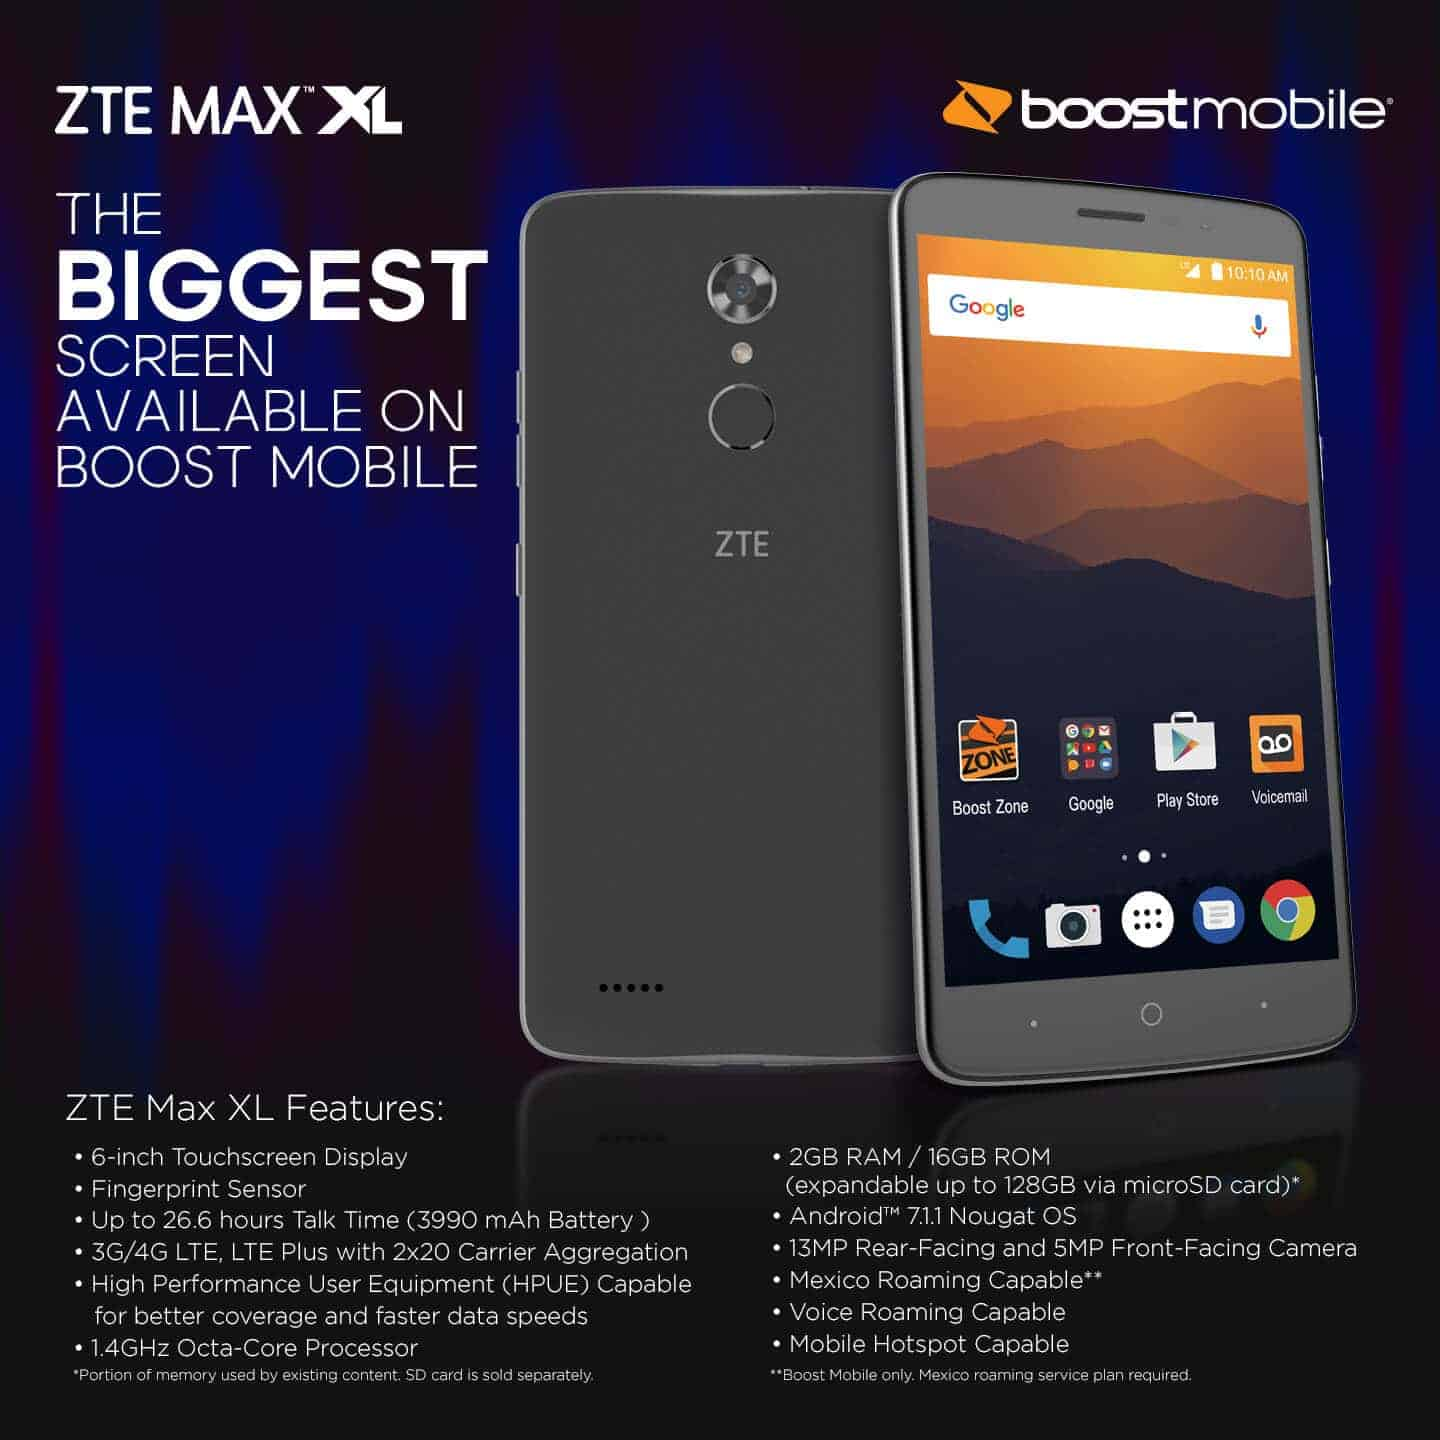 Affordable Zte Max Xl Lands At Boost Mobile